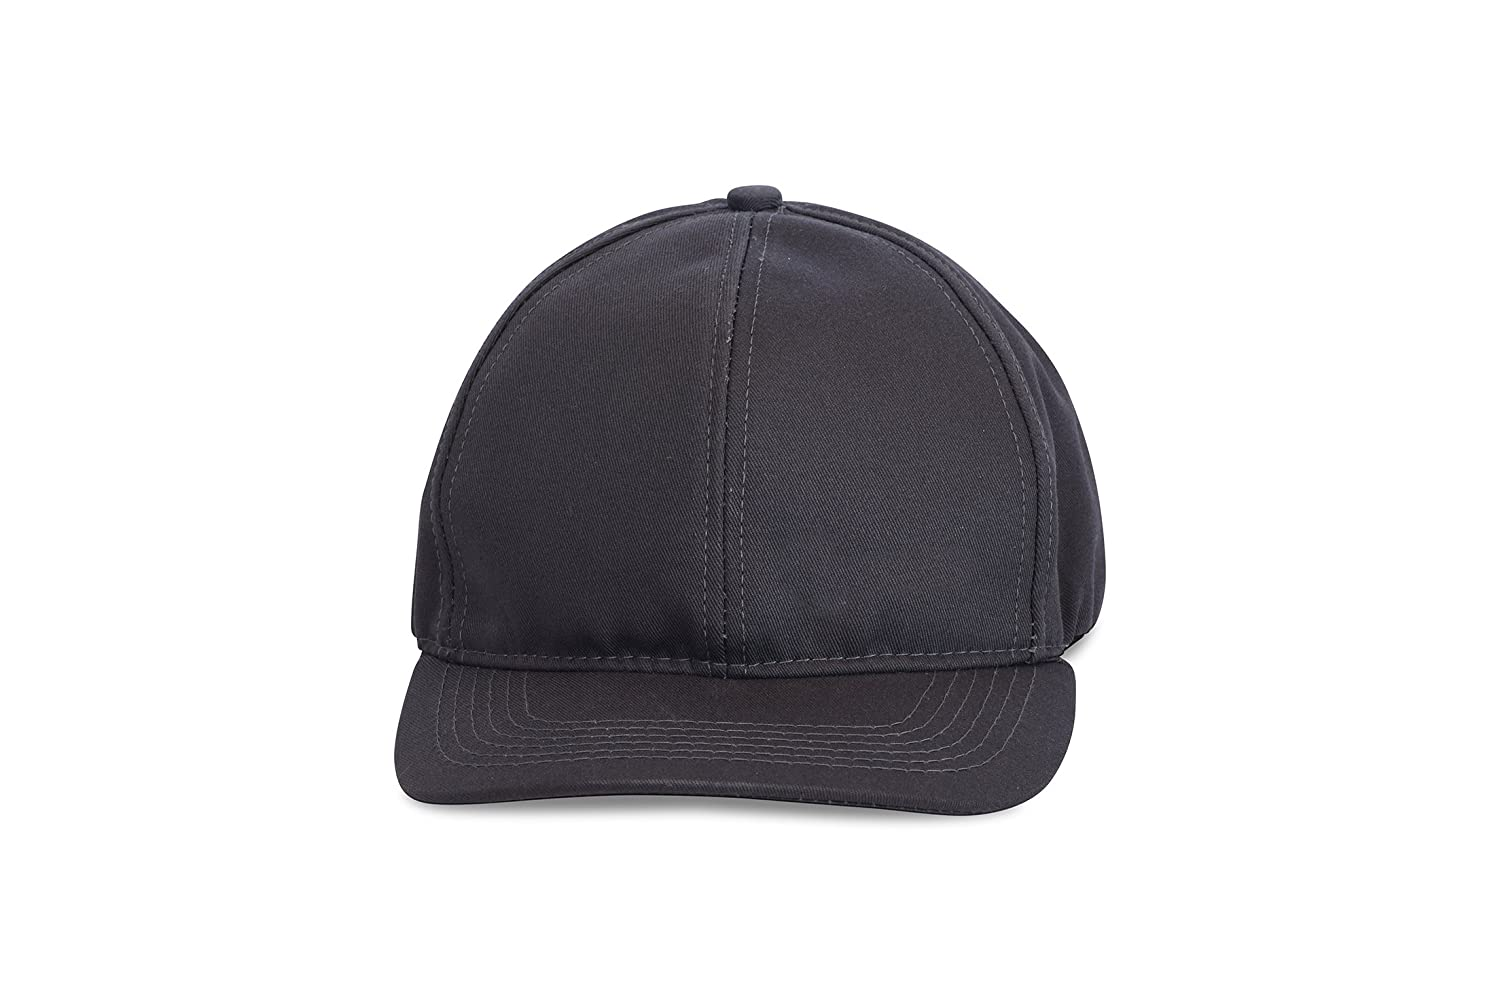 Shielding From RF//HF Electromagnetic Fields and Low Frequency Electrical Fields Small, Dark Navy EMF Protection Cap